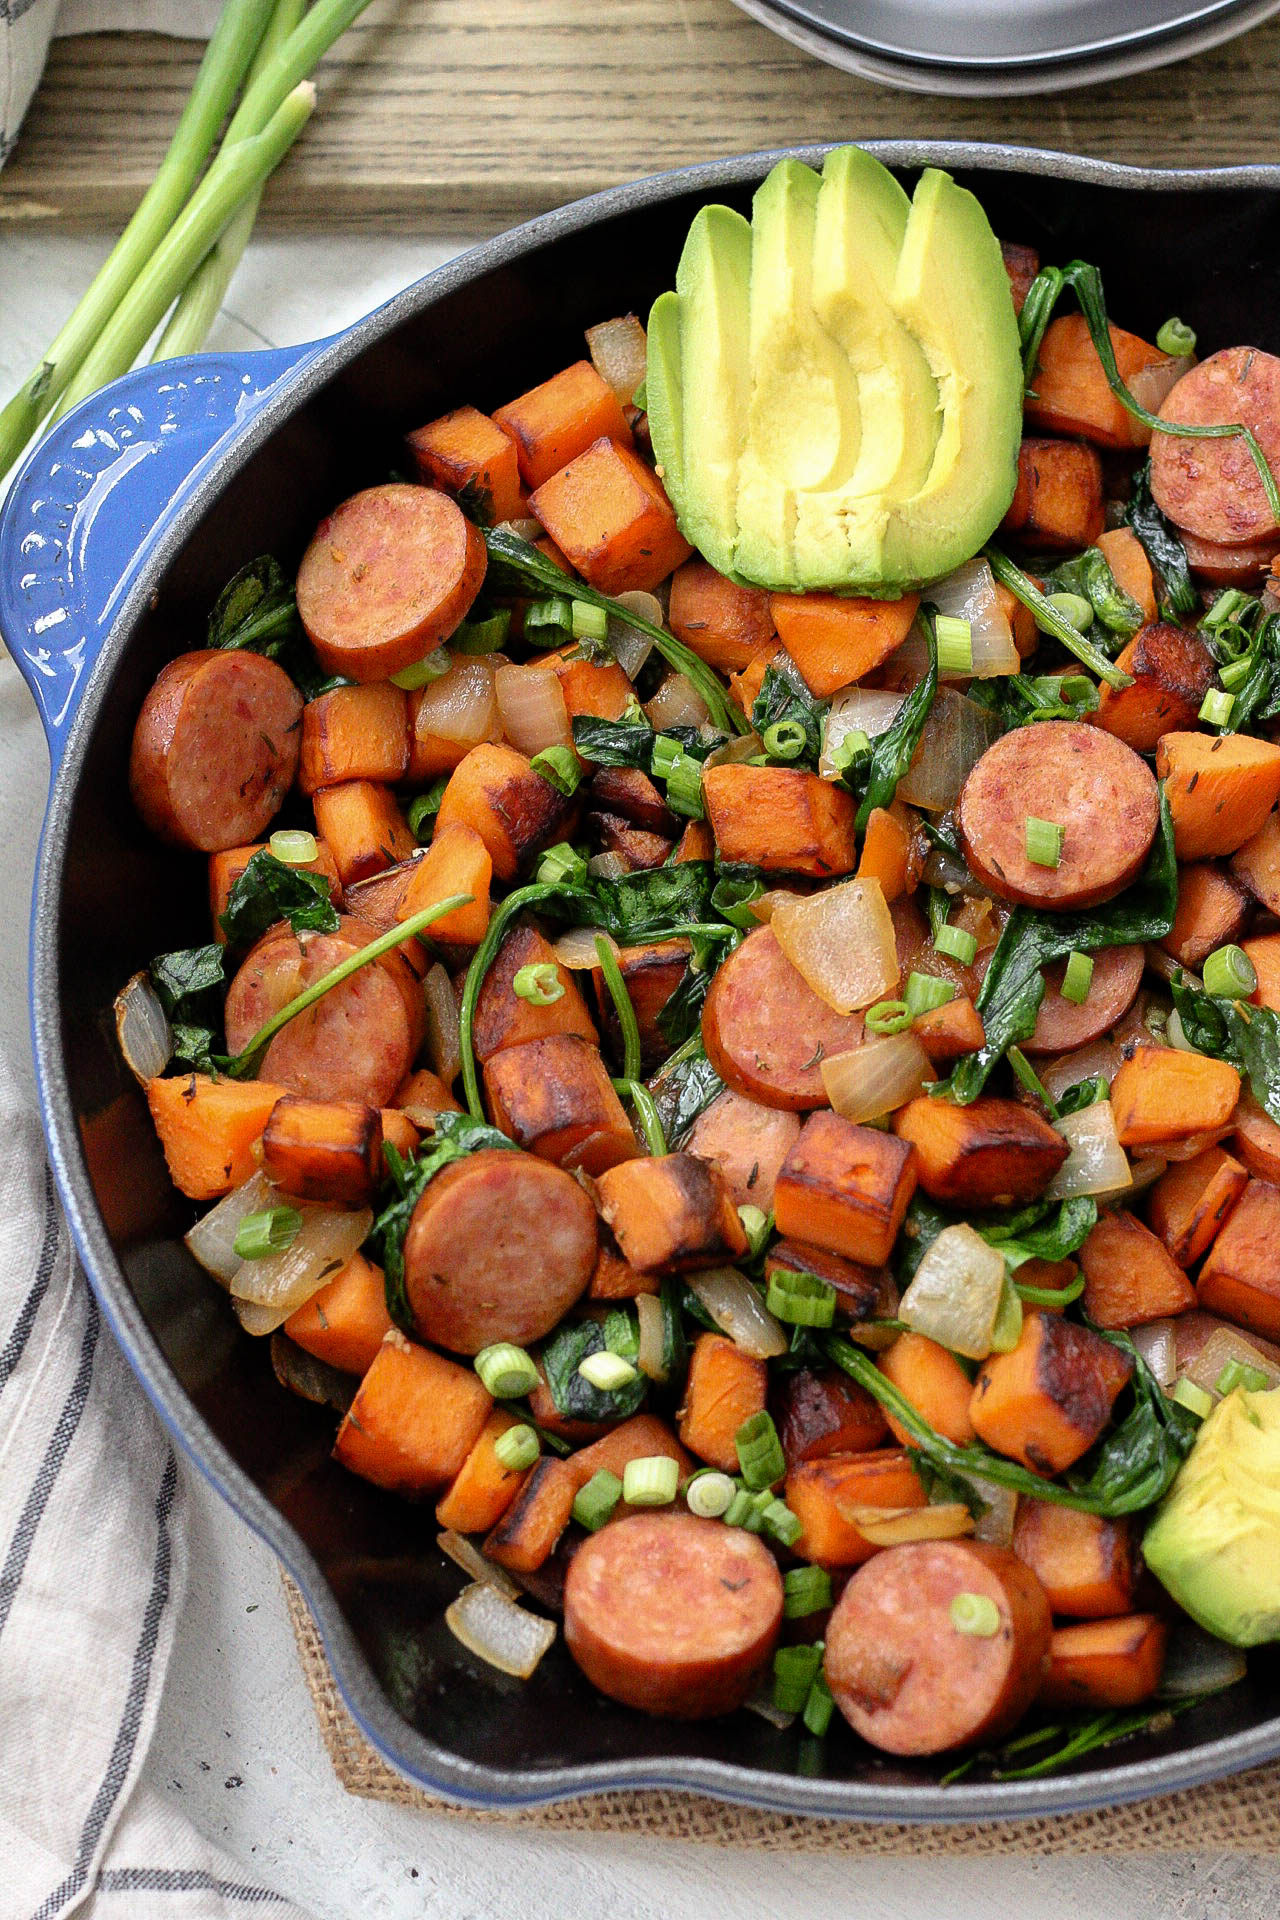 An easy Paleo egg-free breakfast recipe is always a simple go to meal. This skillet is full of healthy vegetables, flavorful spices and sausage! This egg-free breakfast is also Whole30 for when you're sick of eggs or want to meal prep breakfast! #eggfreebreakfast #paleobreakfast #whole30breakfast #breakfastskillet #breakfasthash